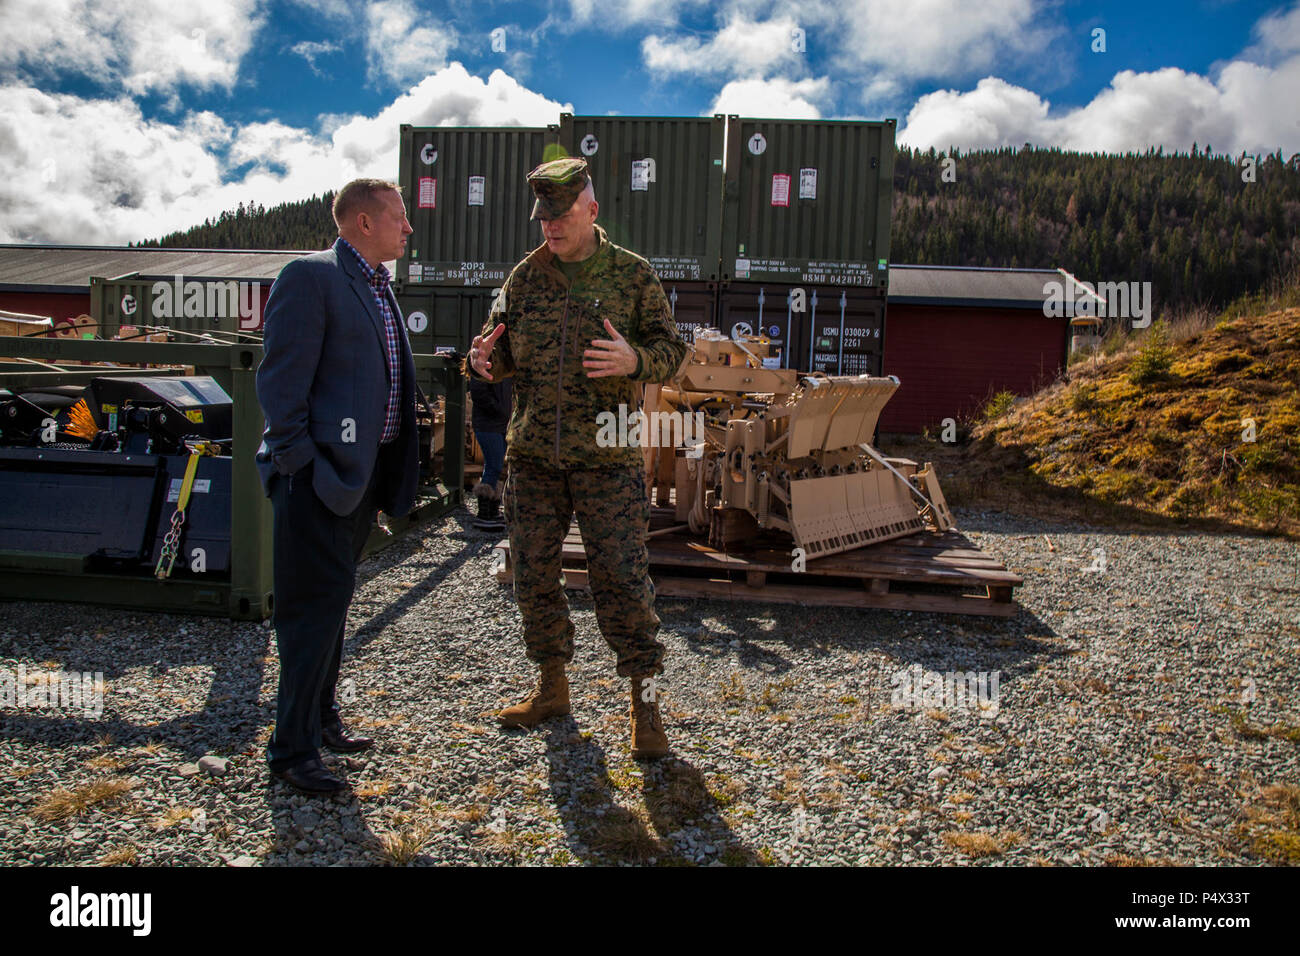 U.S. Marine Maj. Gen. Niel Nelson, commander of U.S. Marine Corps Forces Europe and Africa (MARFOREURAF), discusses the Marine Corps Prepositioning Program Norway (MCPP-N), with Lyle Layher, MARFOREURAF's prepositioning officer, at an assembly area in Norway, May 9, 2017. By storing equipment in Norwegian caves, MCPP-N eliminates the need to deploy equipment from the United States for contingency operations which decreases the time required to prepare units. Stock Photo